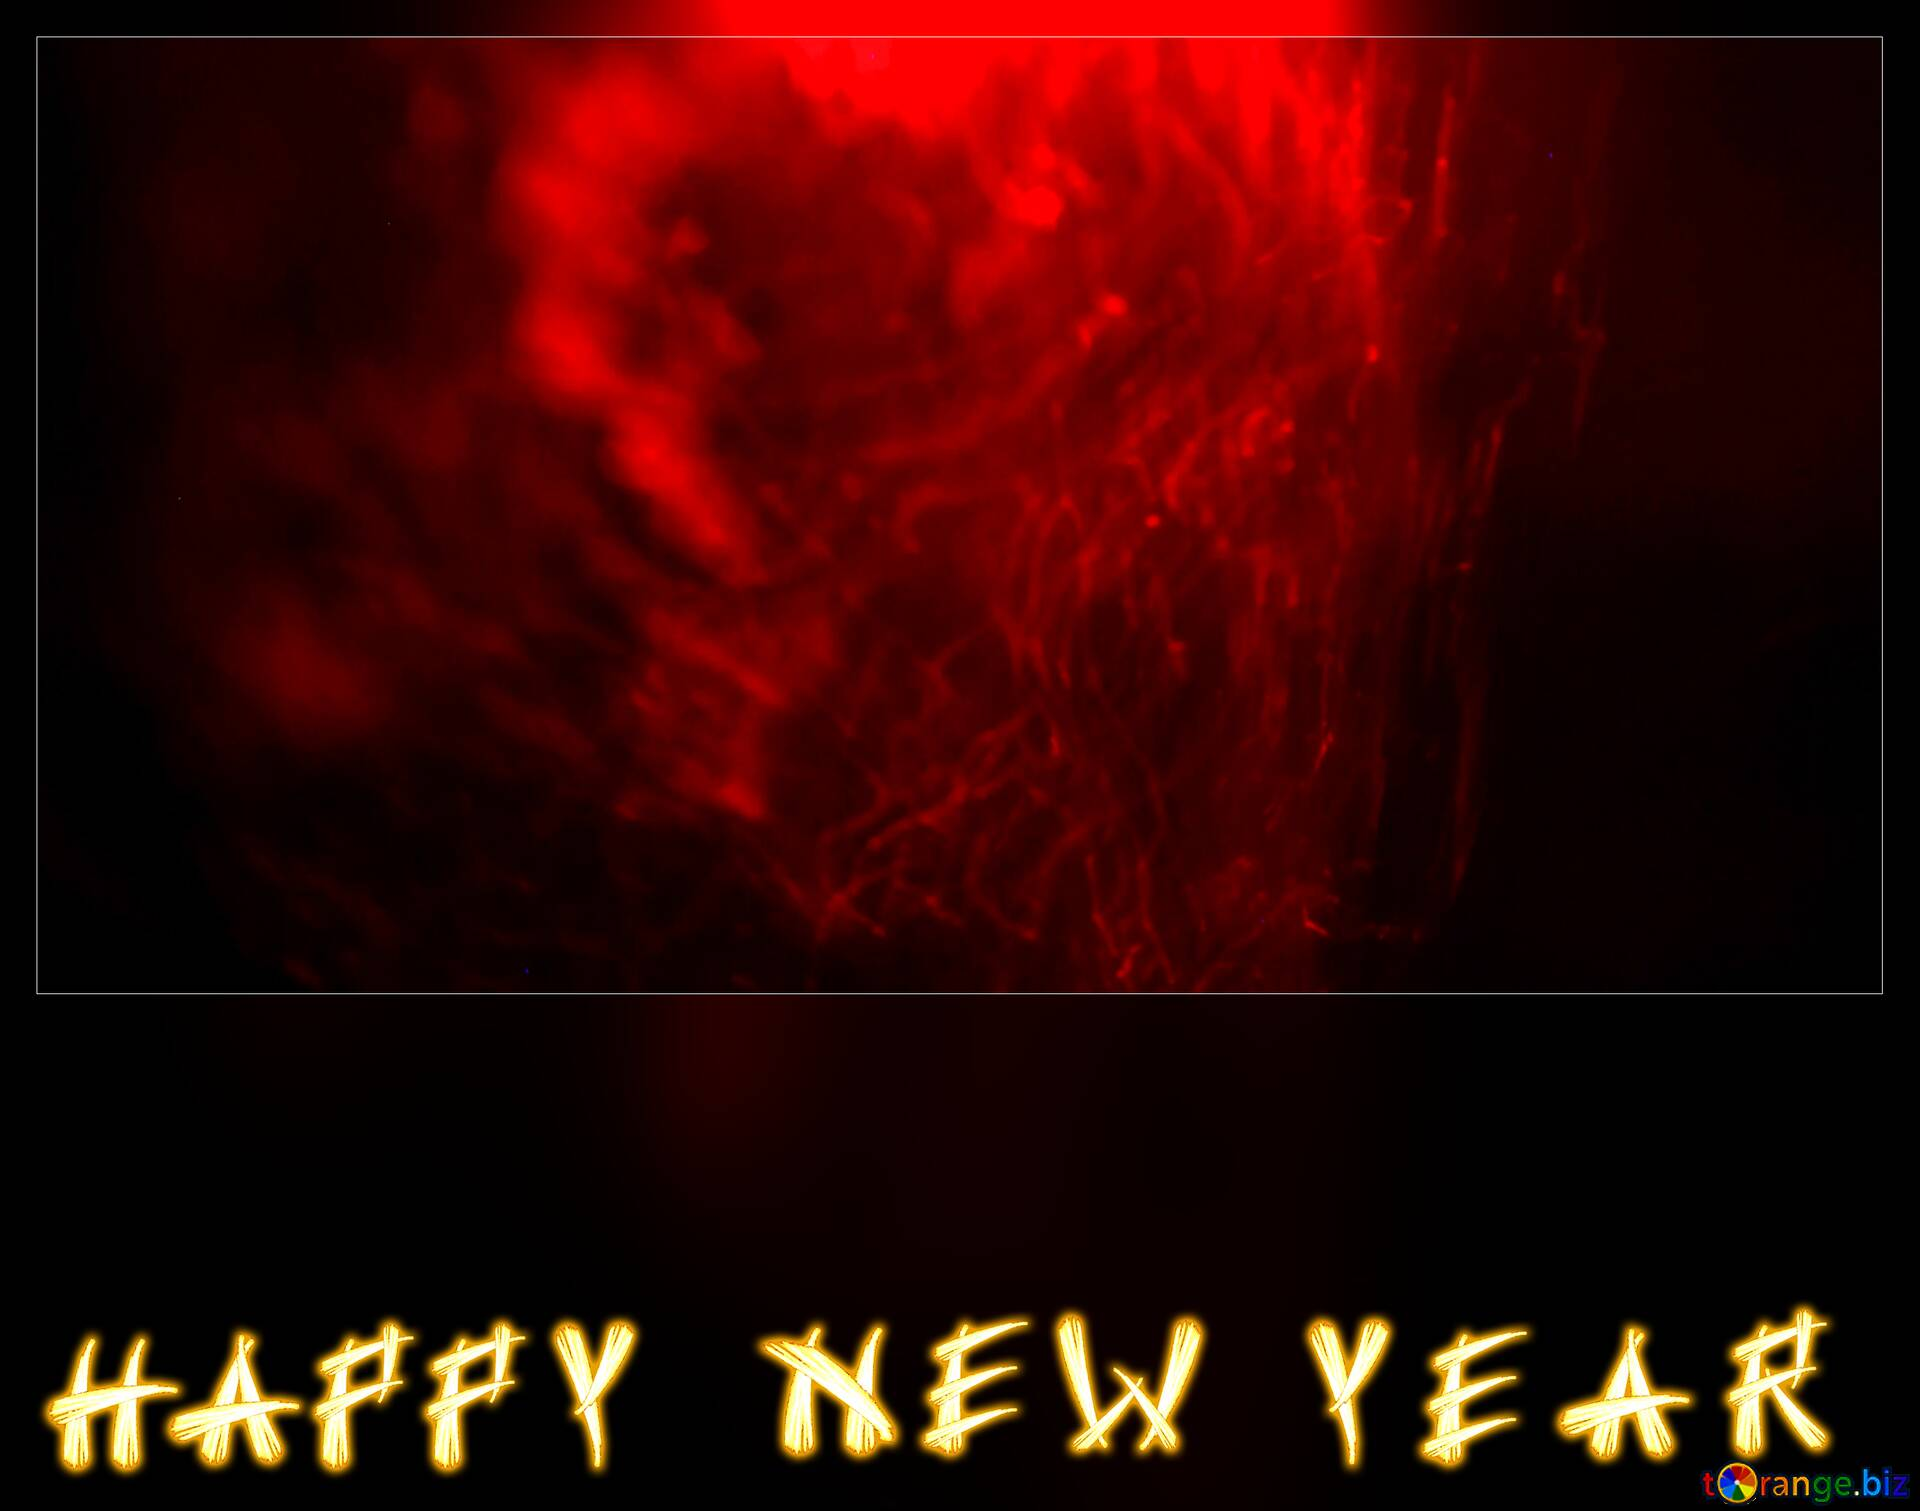 Download Free Picture Fiery Red Happy New Year Red Card Blank Background On Cc By License Free Image Stock Torange Biz Fx 80246